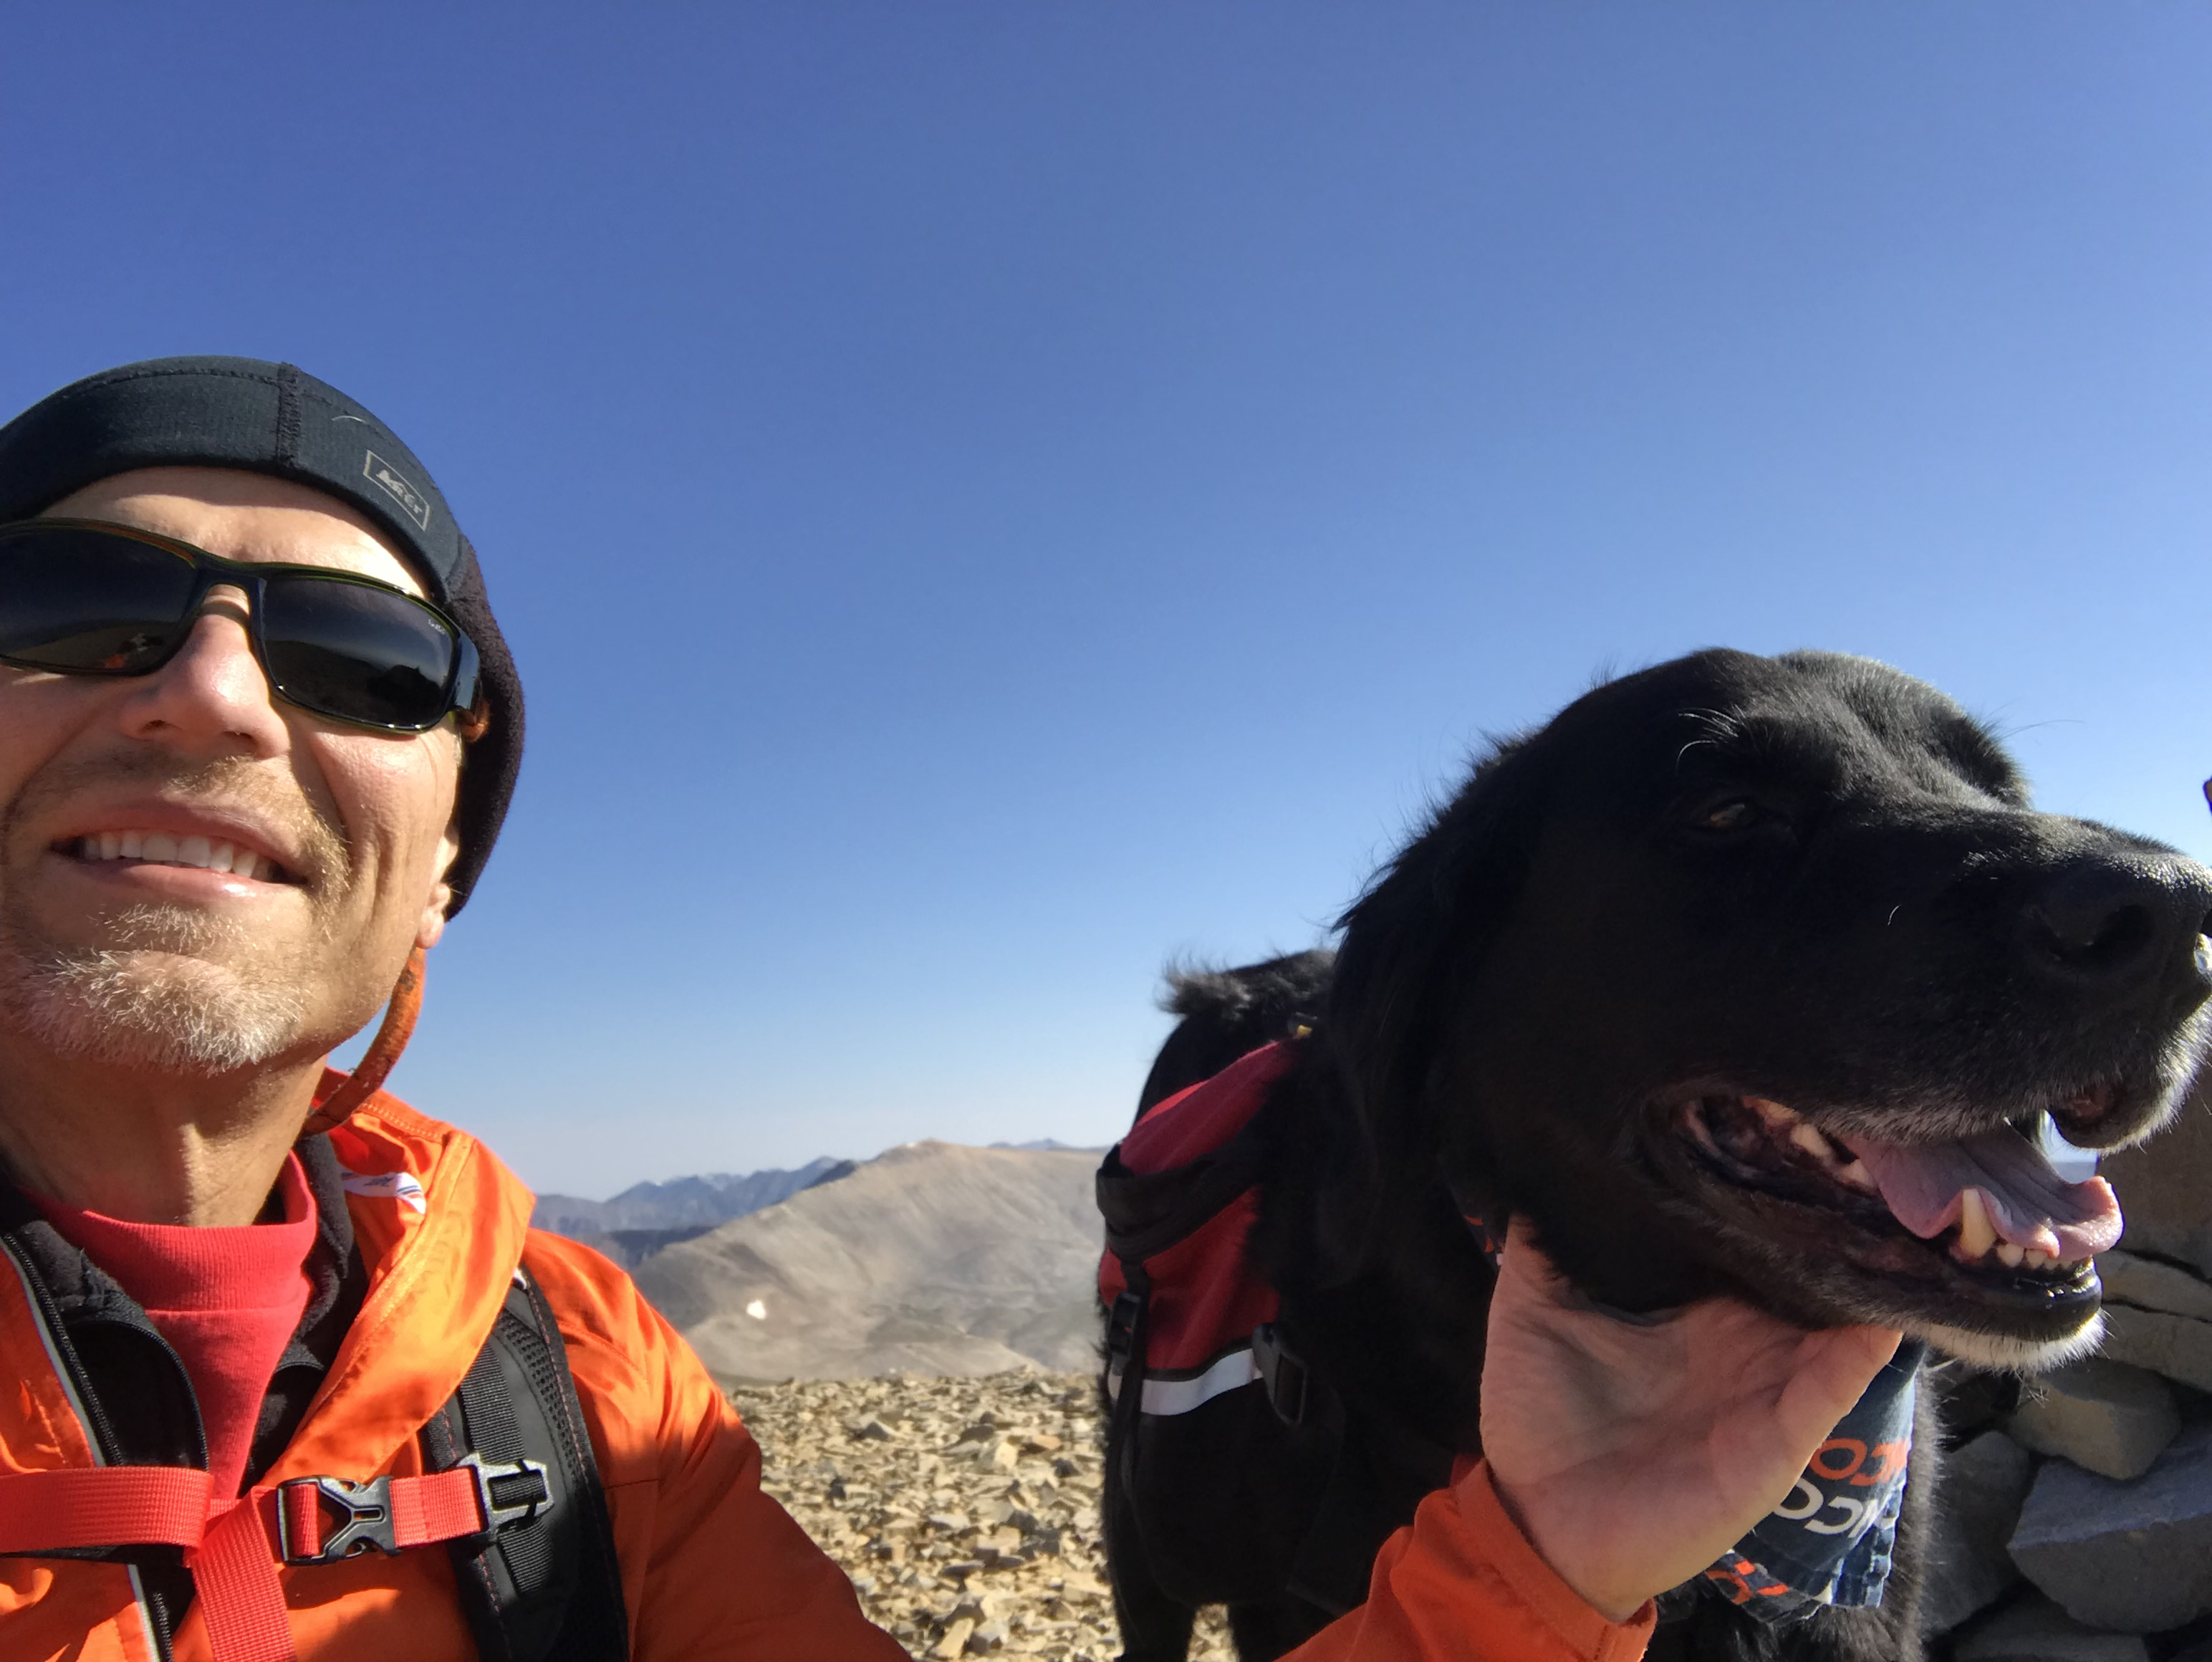 Sweaty person with sweaty dog, high up in the mountains.